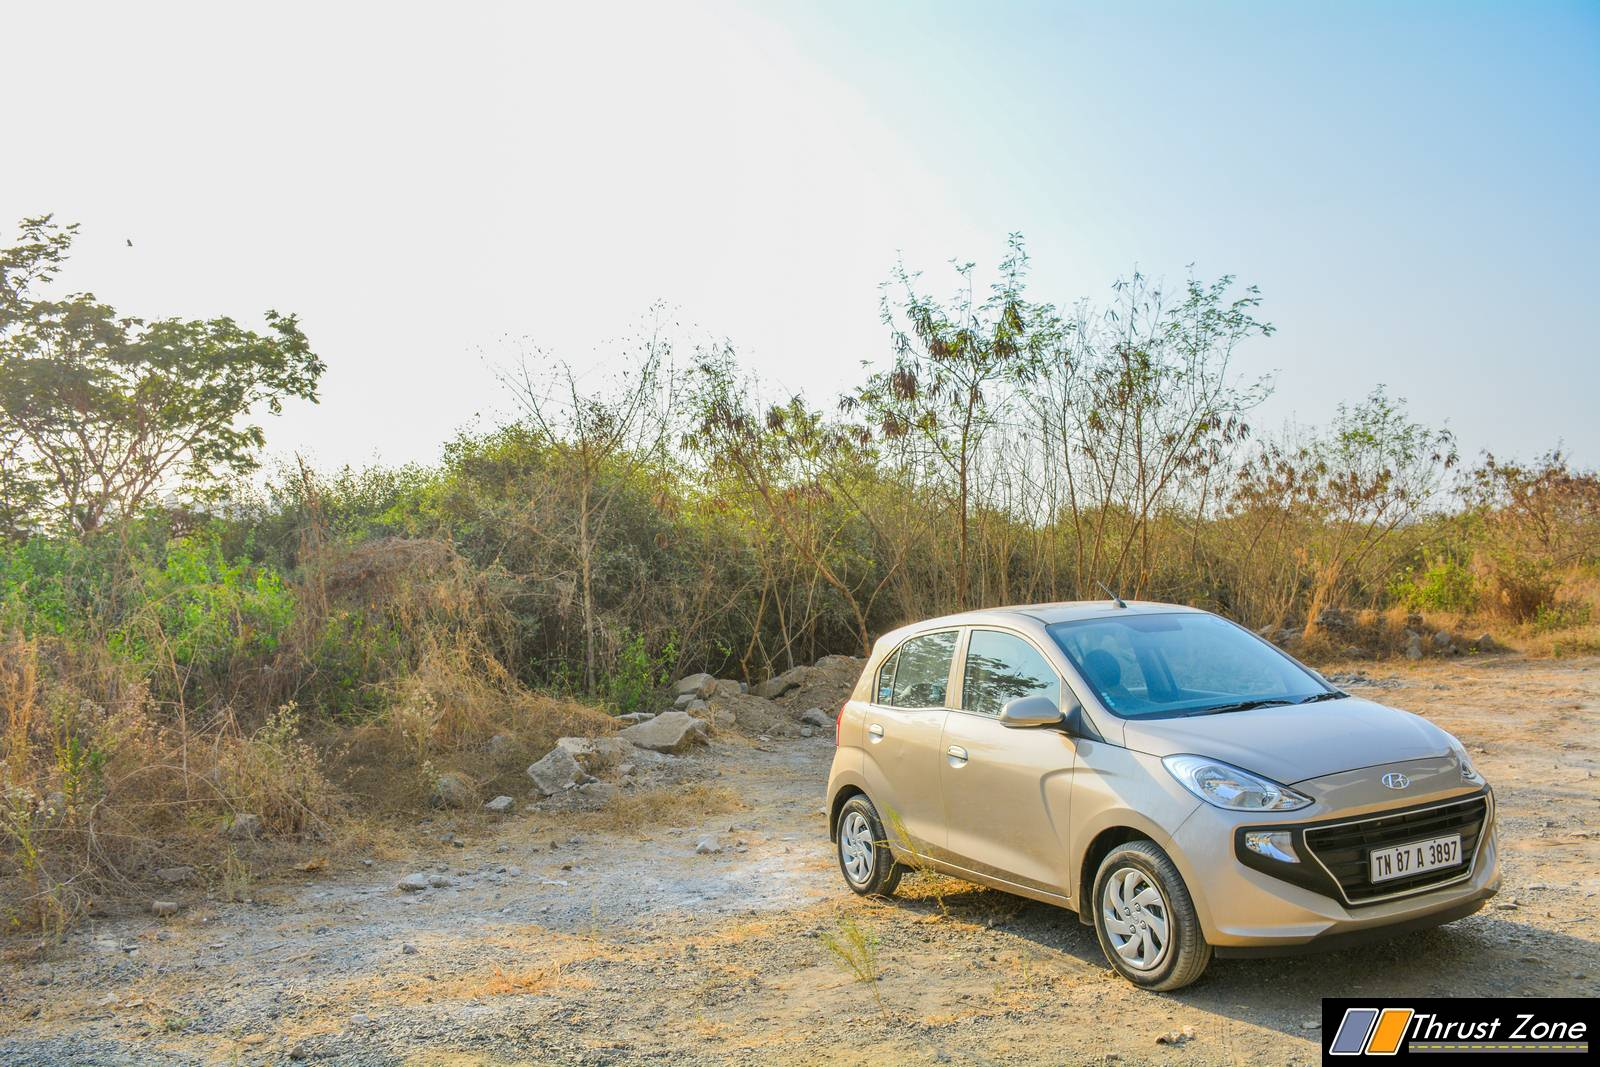 https://www.thrustzone.com/wp-content/uploads/2019/04/2019-Hyundai-Santro-petrol-manual-review-14.jpg